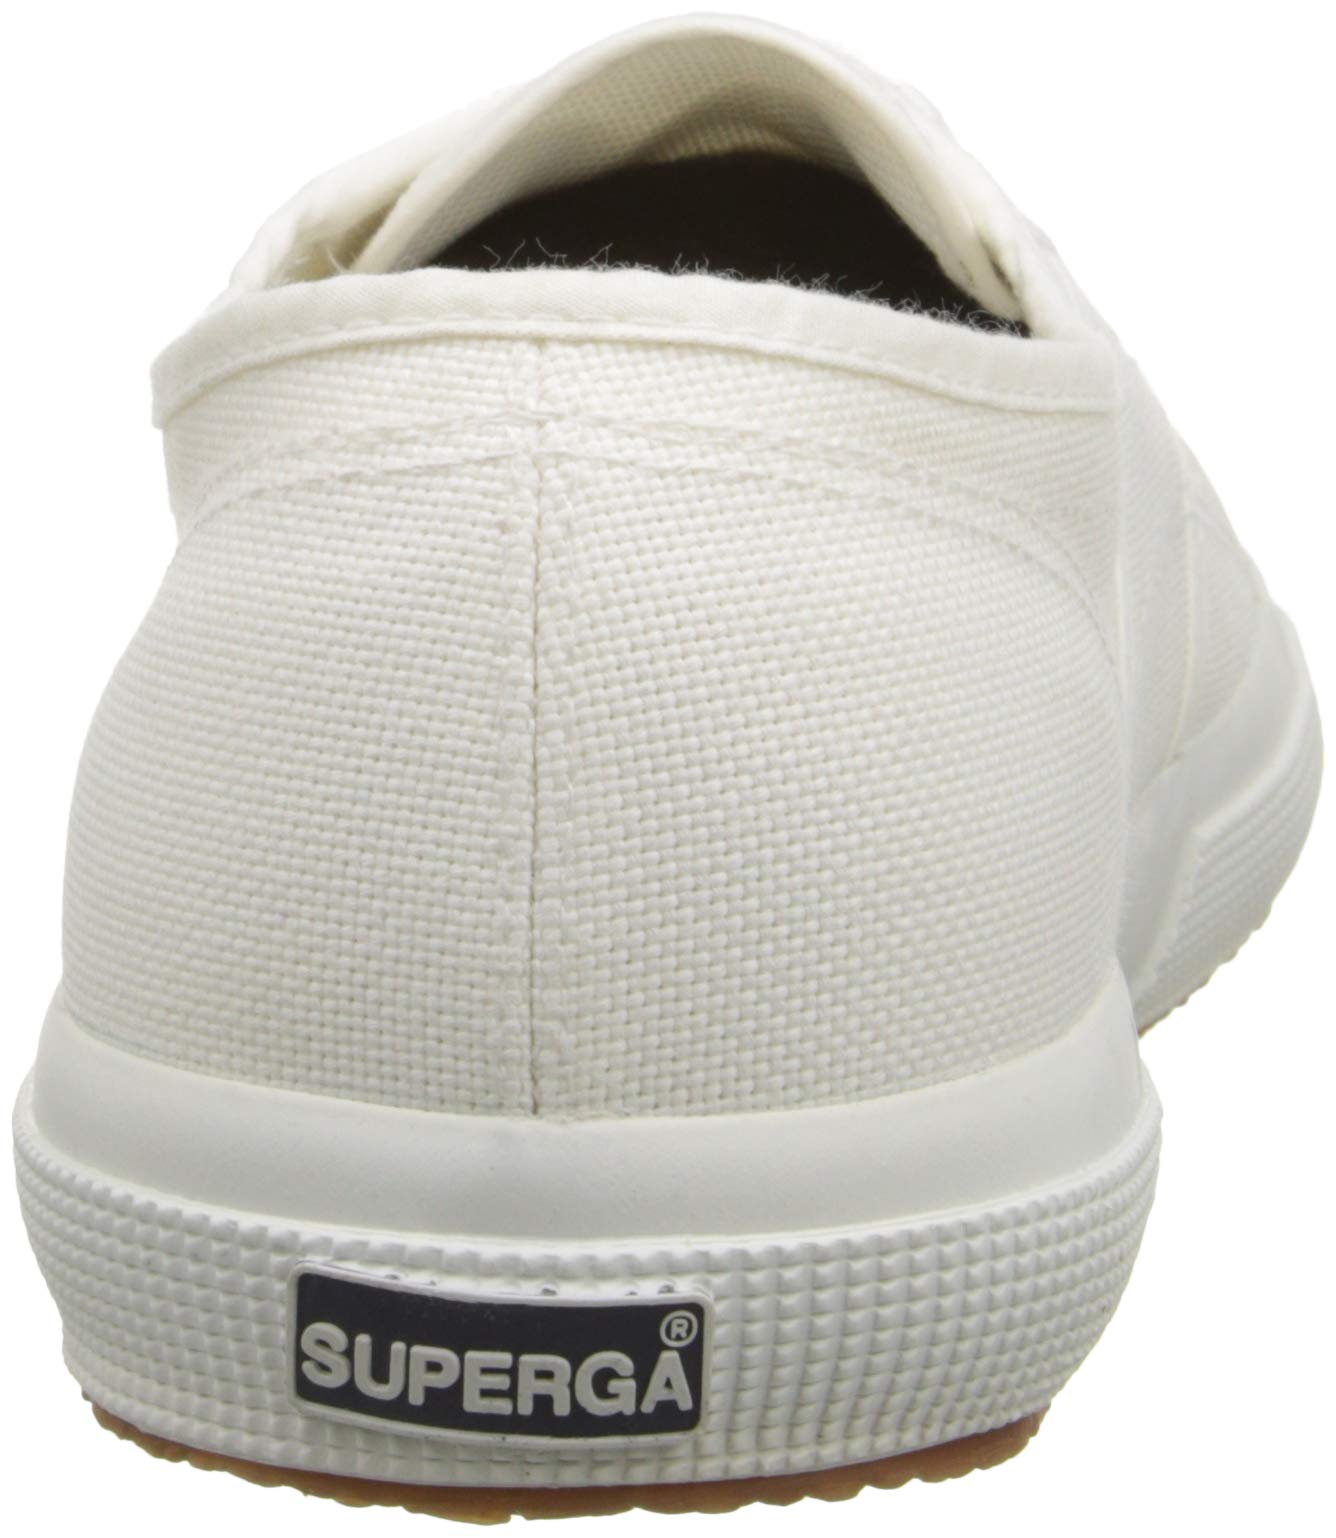 Superga 2750 Cotu Classic, Unisex Adults' Low-Top Sneakers, White, 7.5 UK (41.5 EU) by Superga (Image #2)